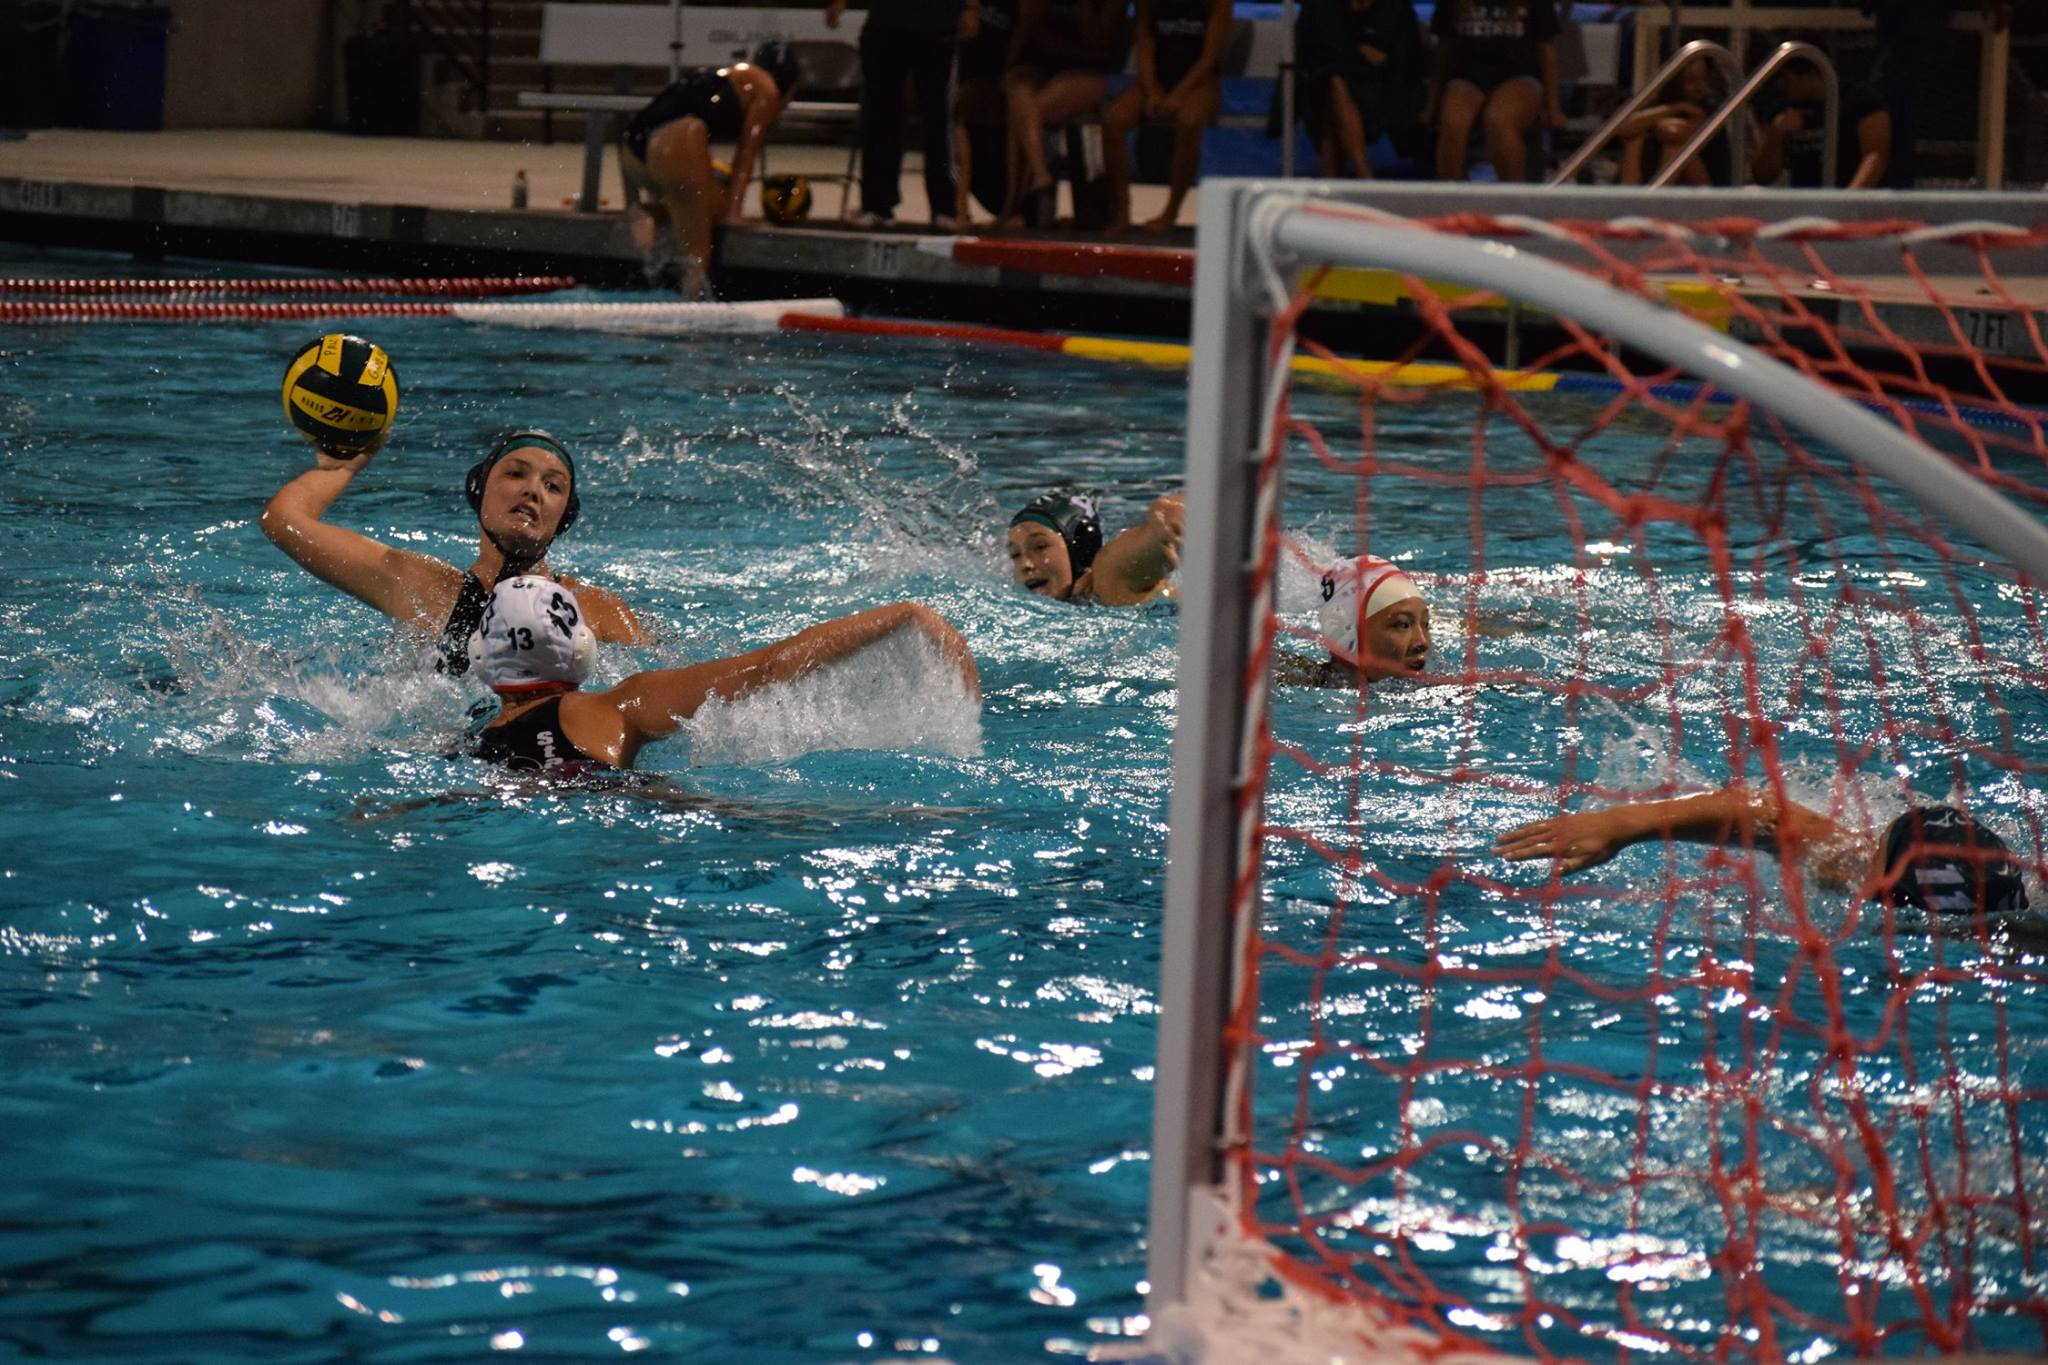 The Palo Alto High School girls' water polo team ends a strong season with a loss Photo by Chirag Akella.